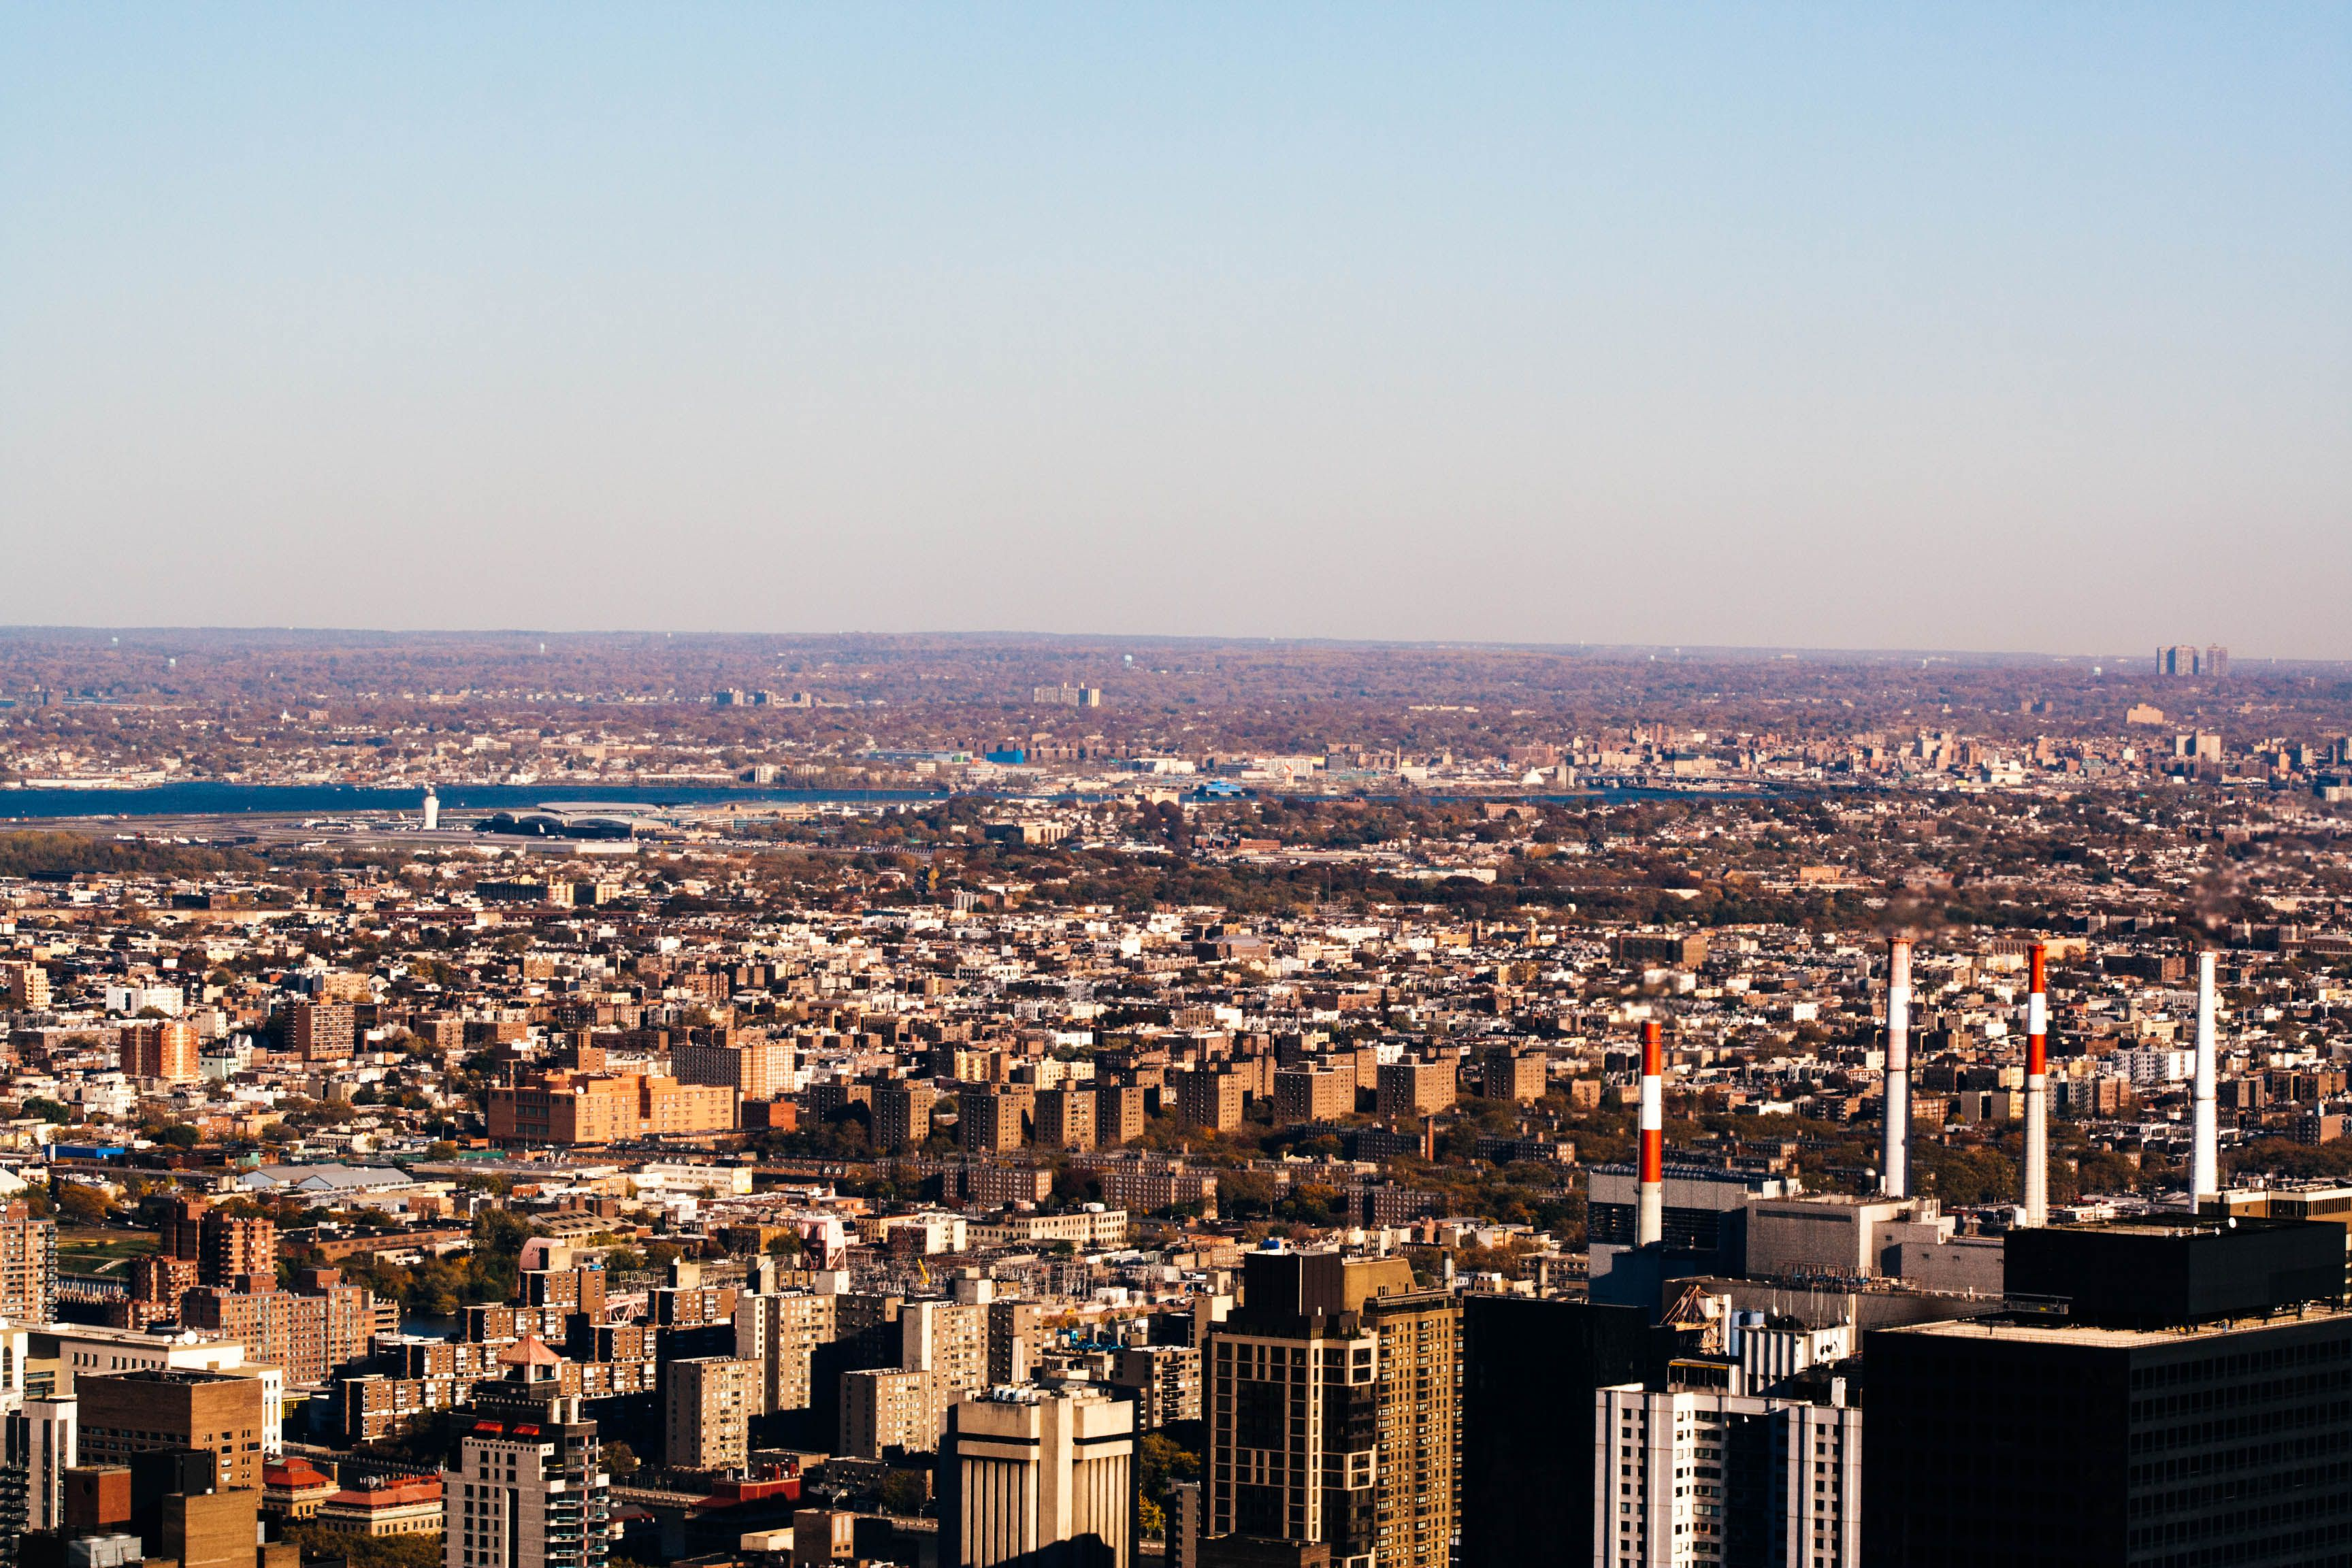 Transportation for Getting to and From LaGuardia Airport